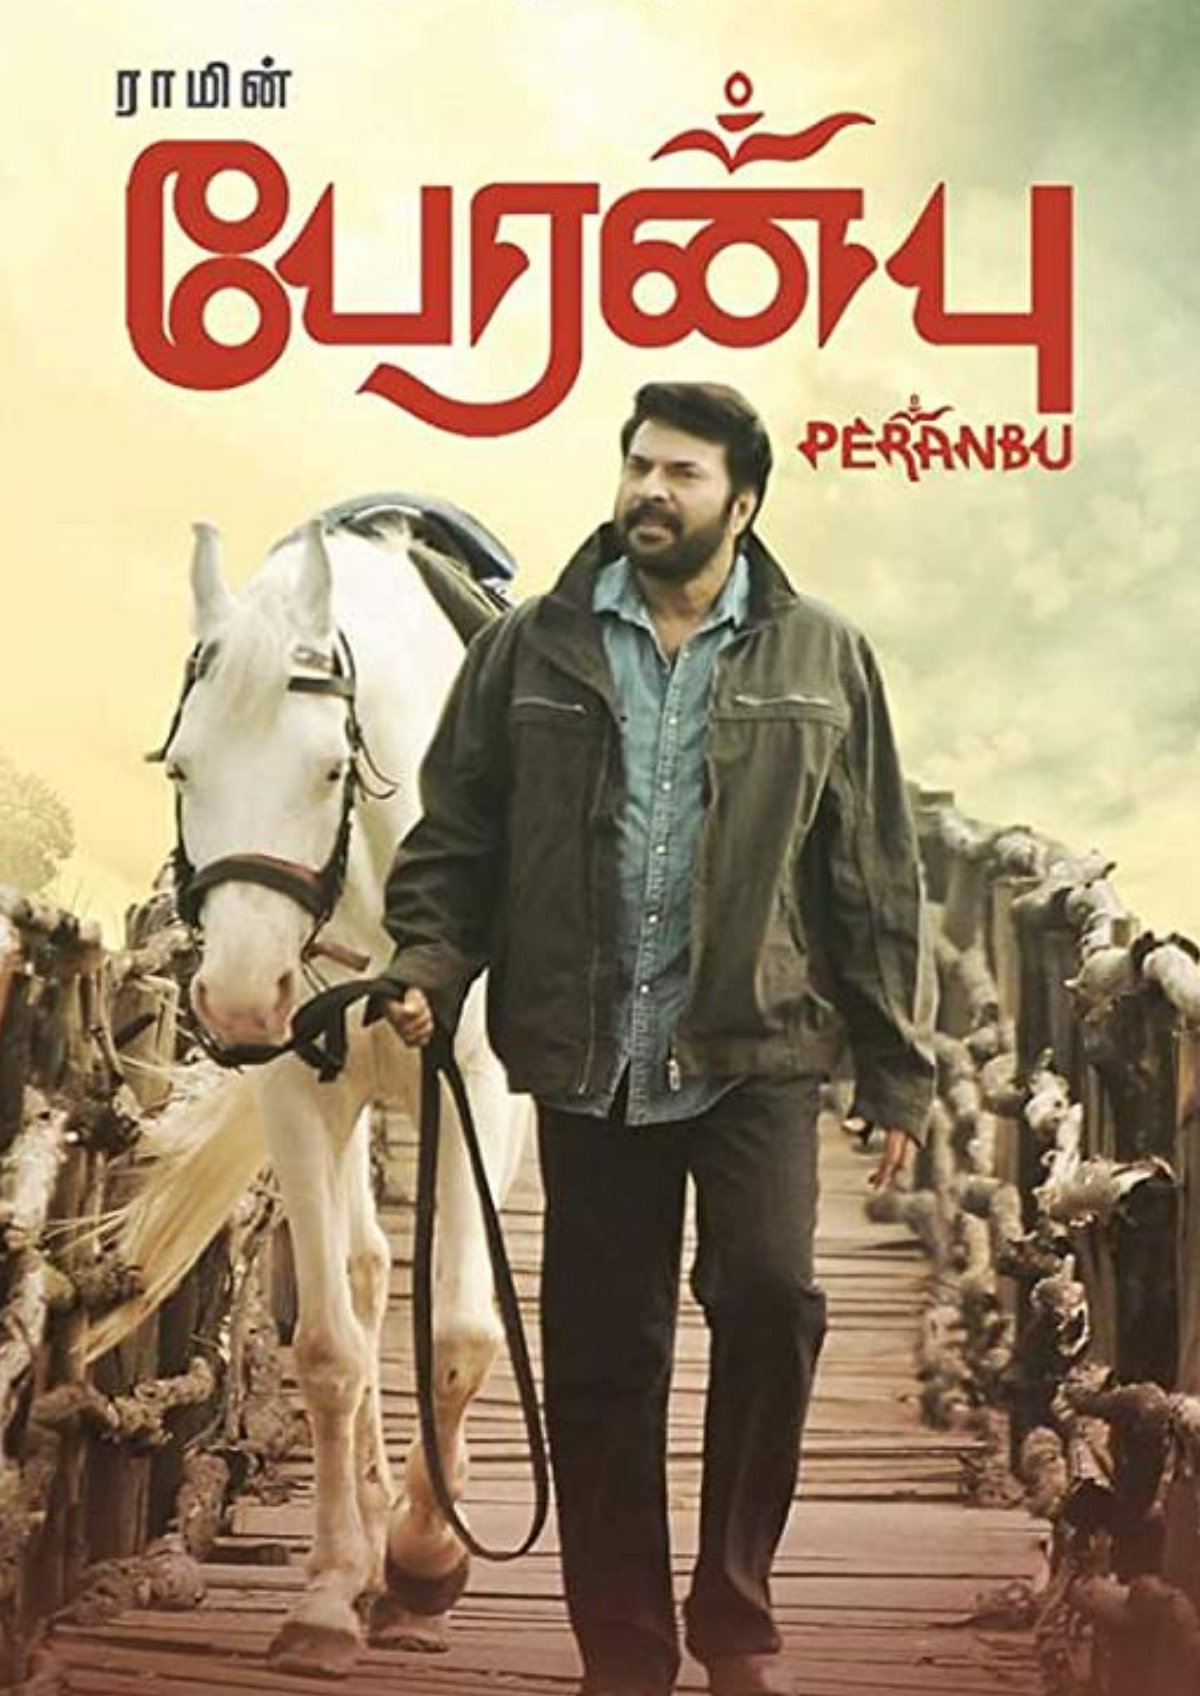 'Peranbu' movie poster